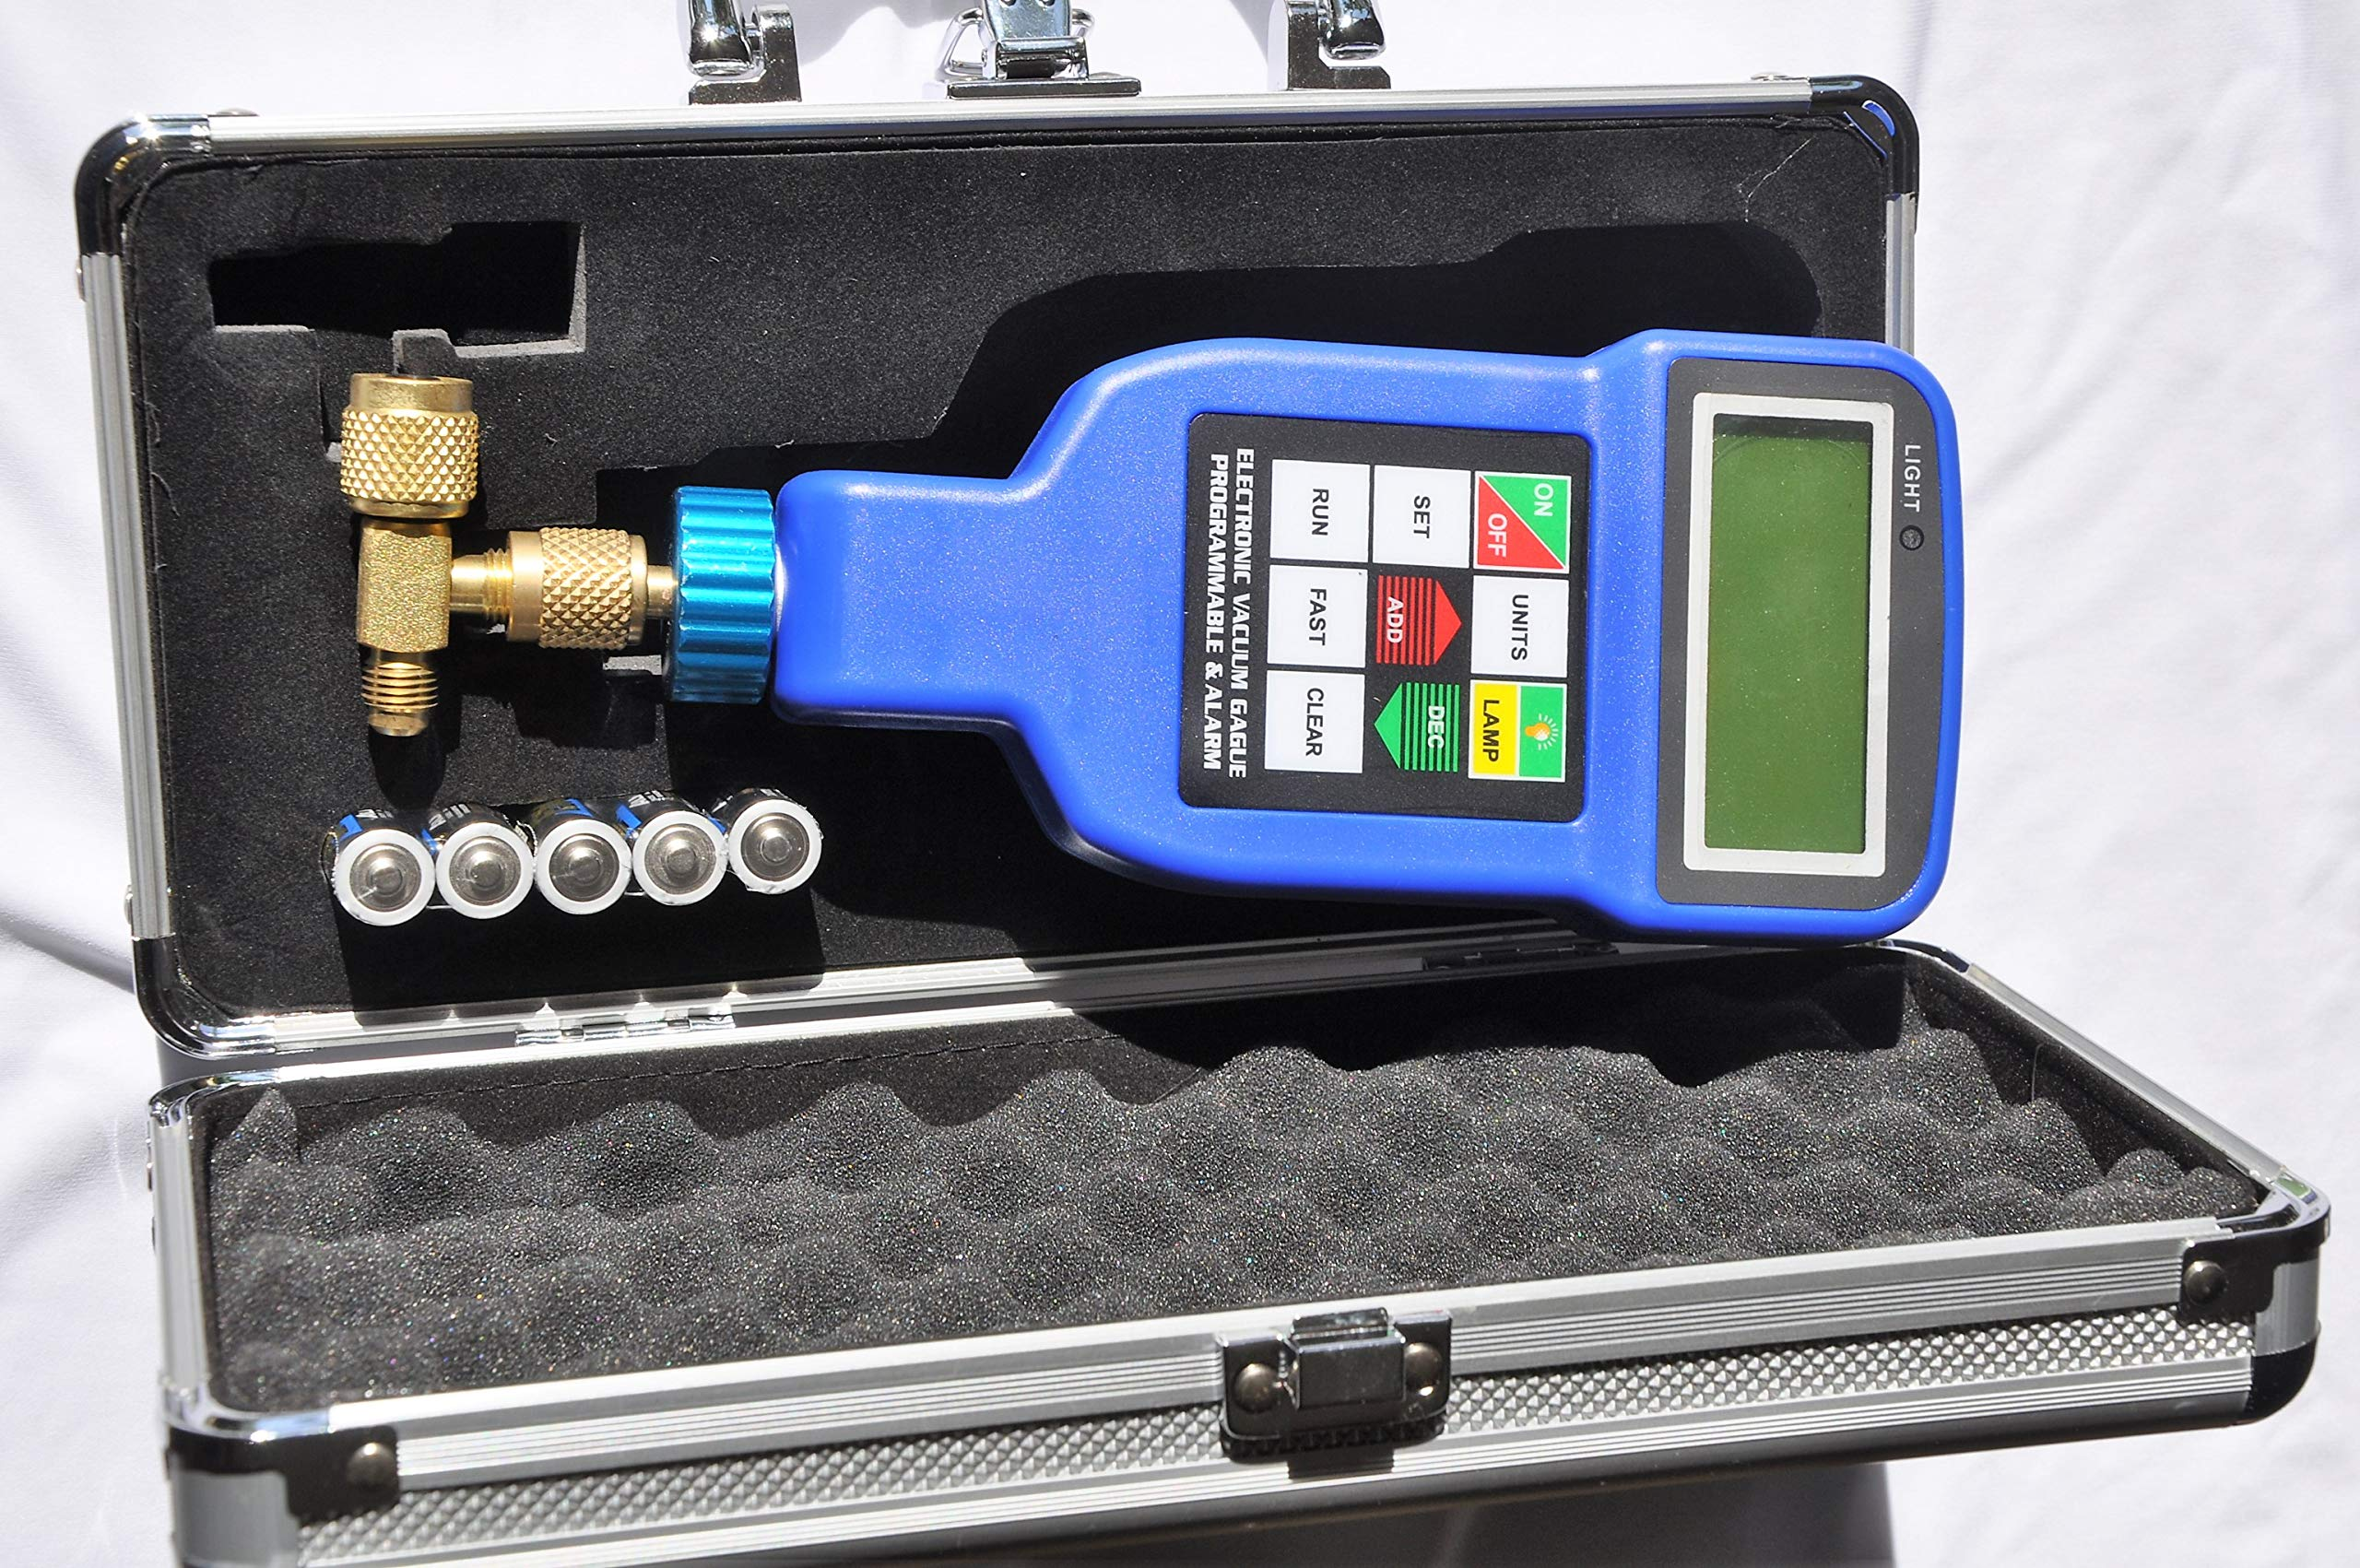 Deep Vacuum Micron Gauge/Digital Meter: AC HVAC Air Condition Refrigeration System Evacuation Optimum Test Tool, Most Accurate on The Market by VIOT (Image #5)